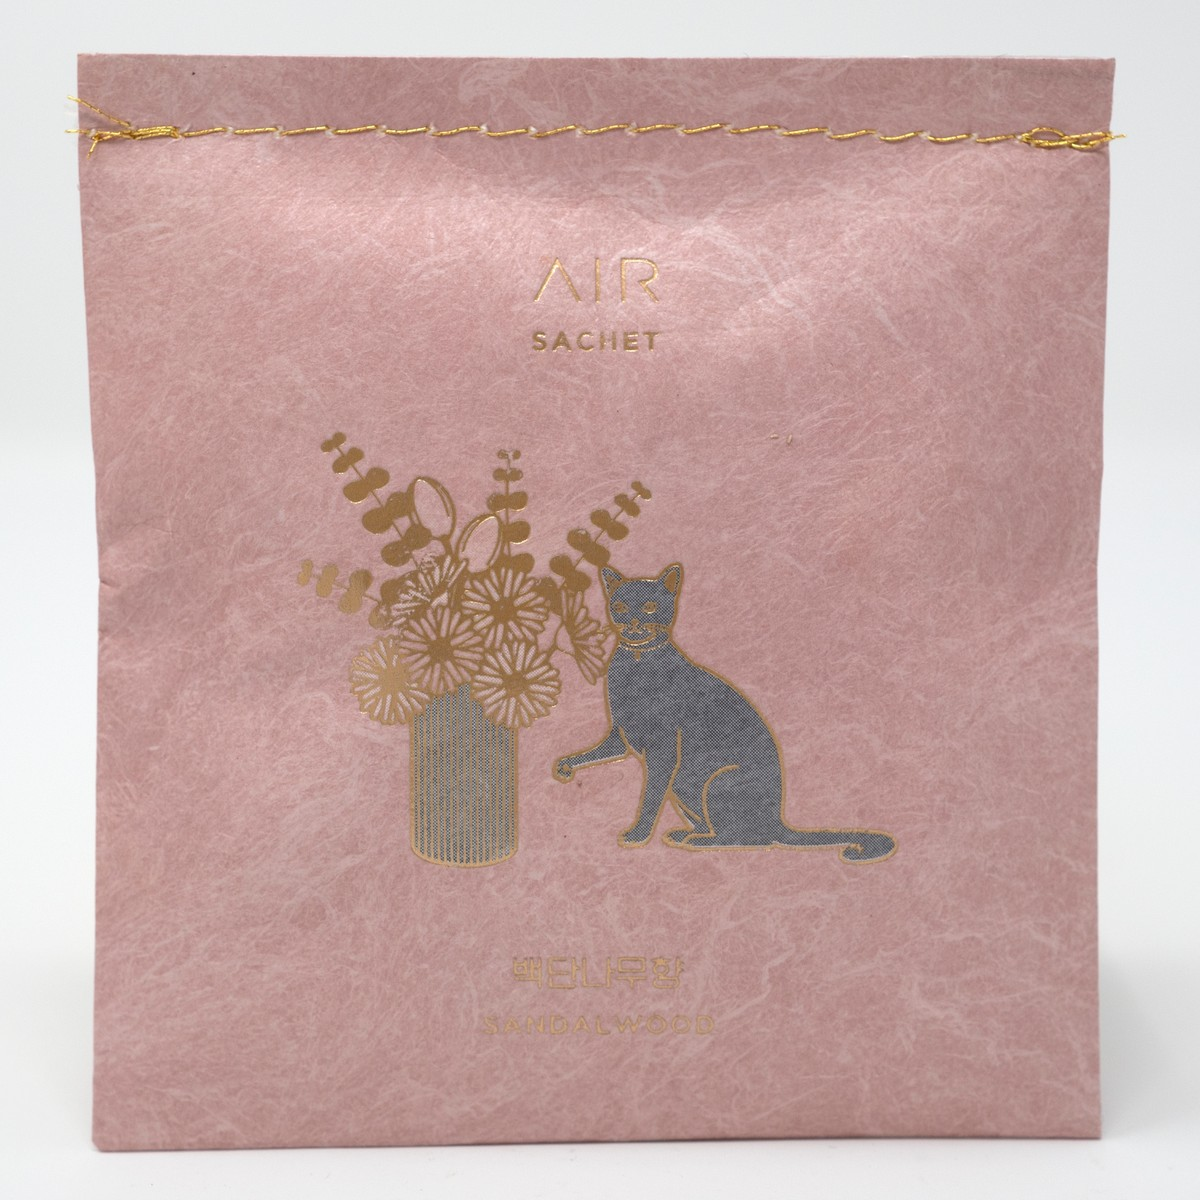 Photo of Korean Sandalwood Incense Sachet